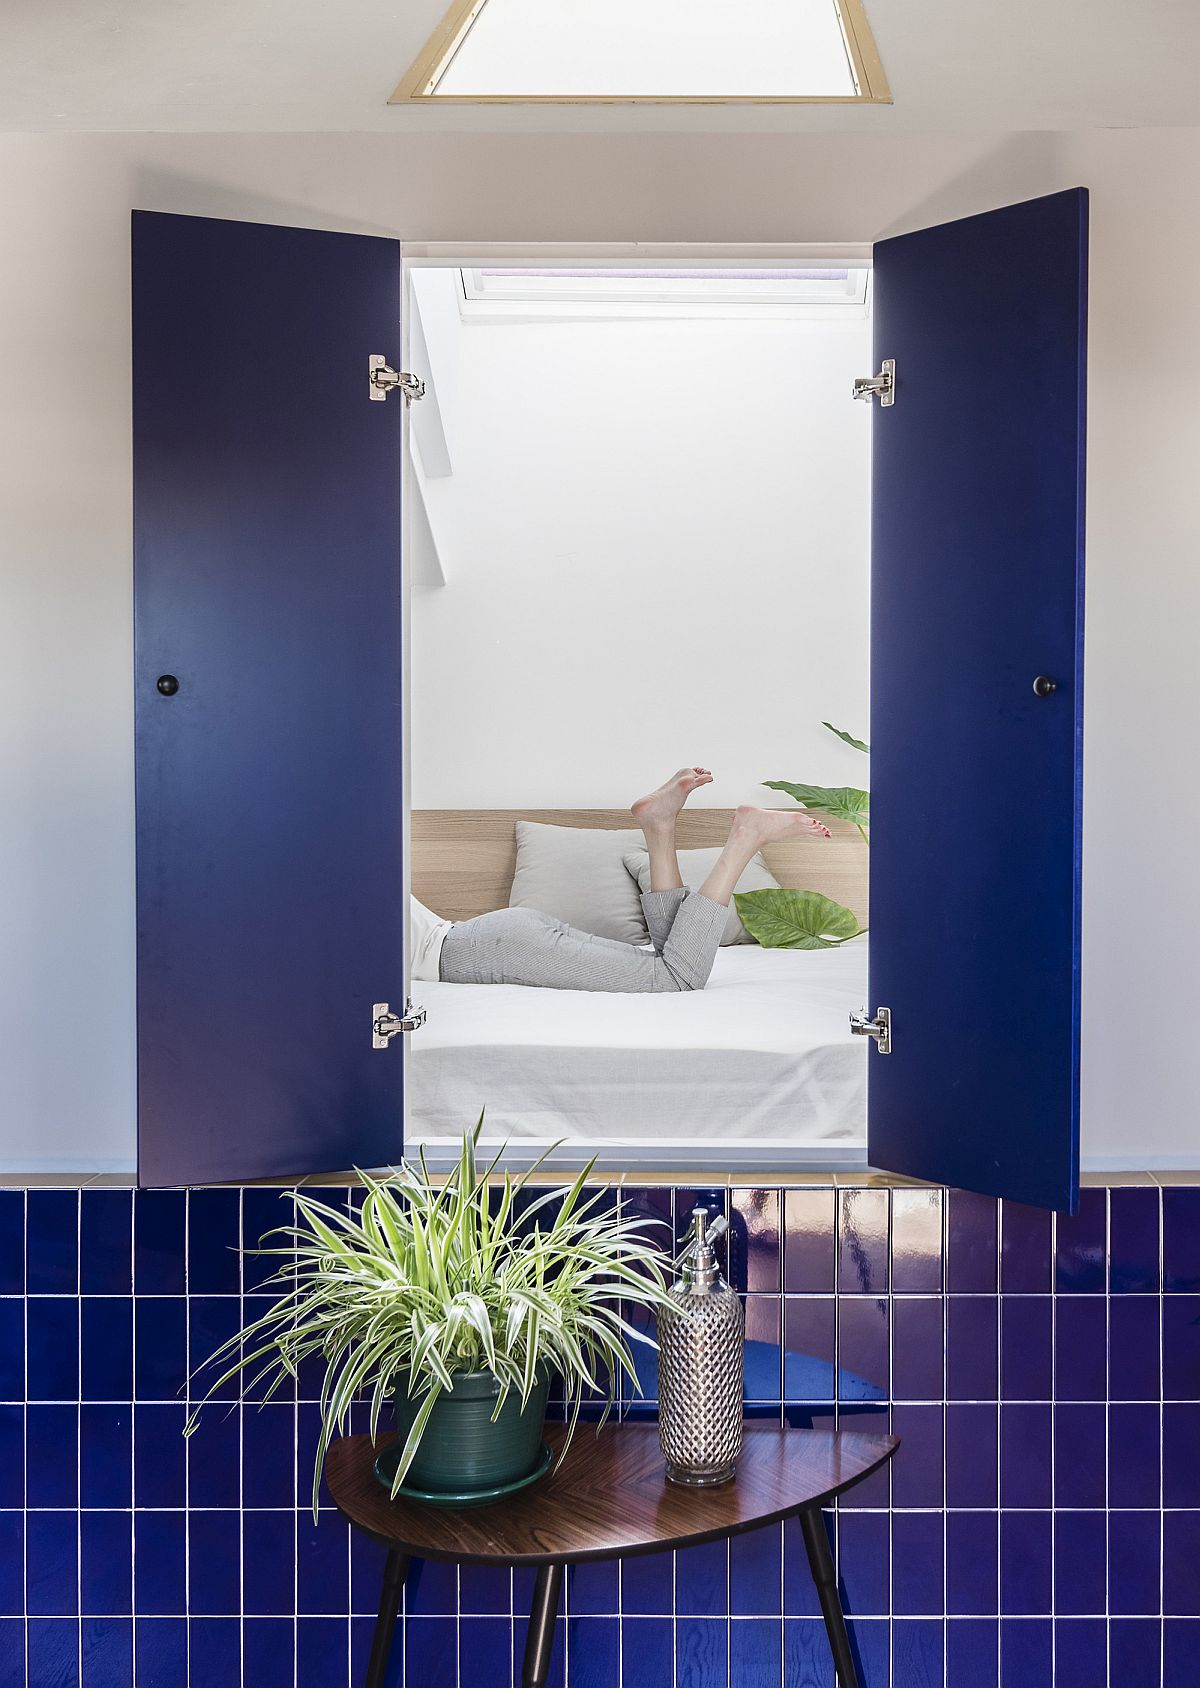 Windows from the bedroom offer a visual connectivity with the living area